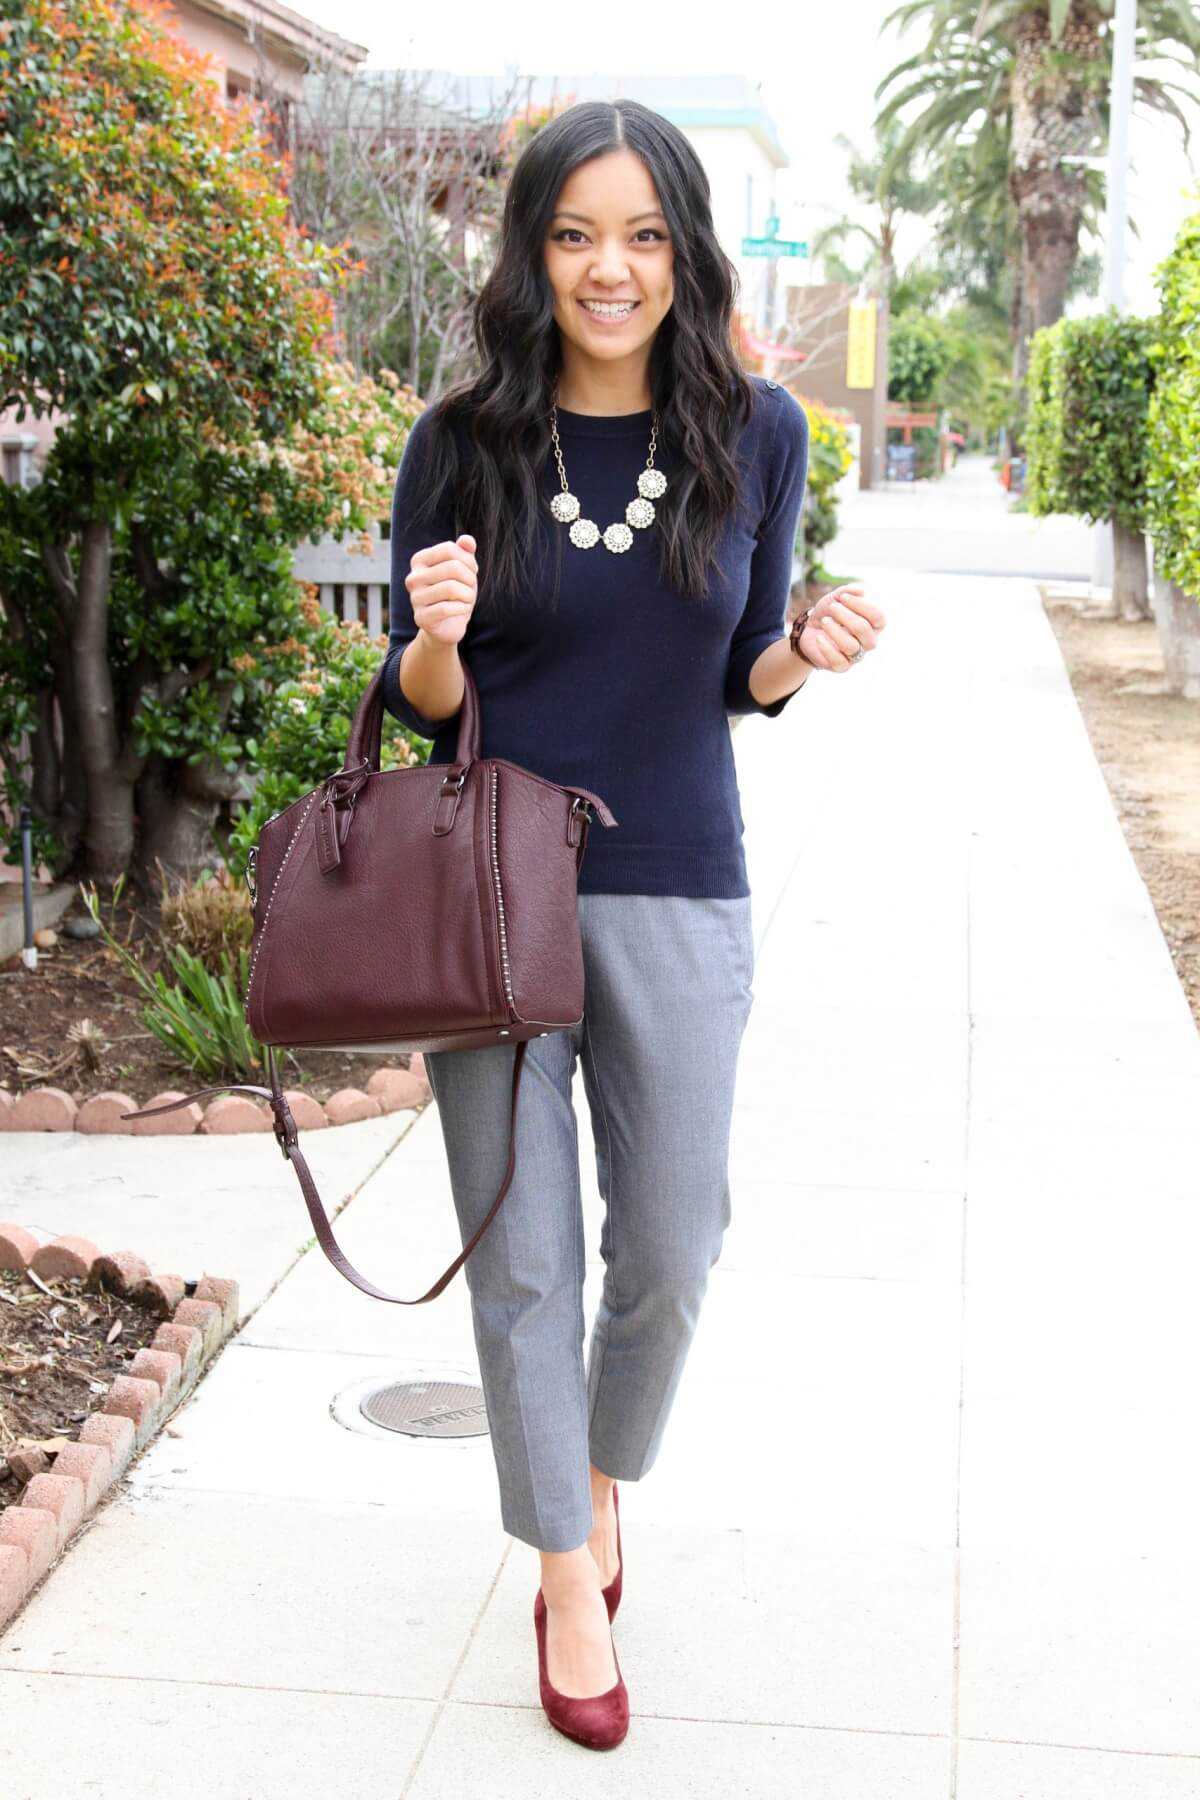 Business Casual Outfit: solid-colored top navy sweater + gray slacks + leopard heels + statement bib necklace + maroon bag + maroon heels